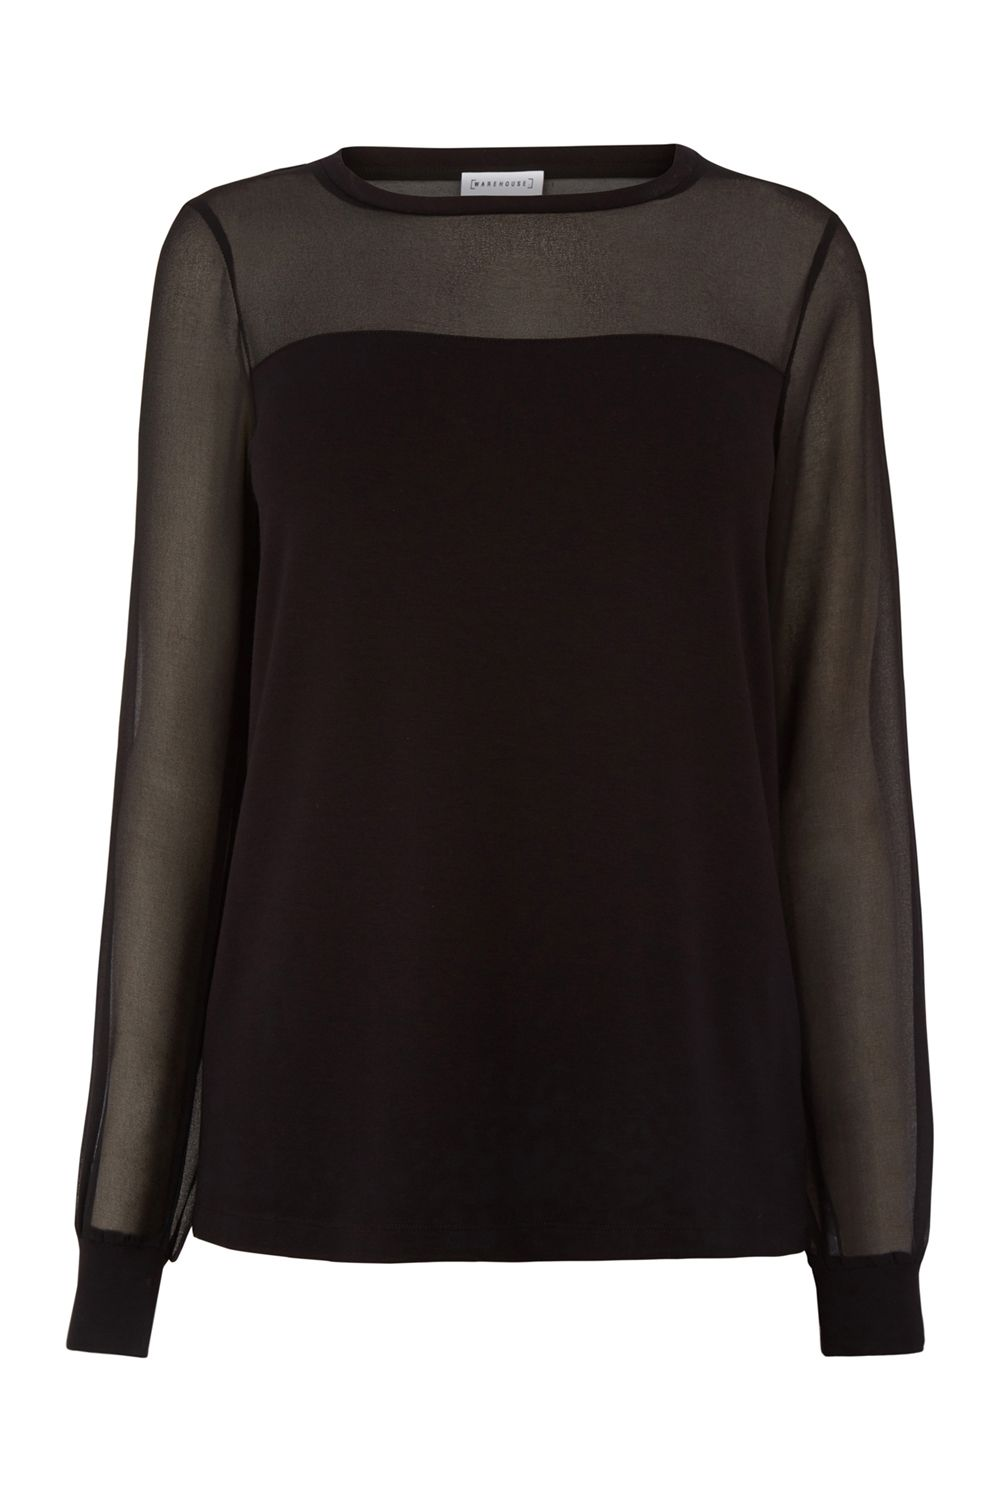 Warehouse Sheer Sleeve Woven Mix Top, Black